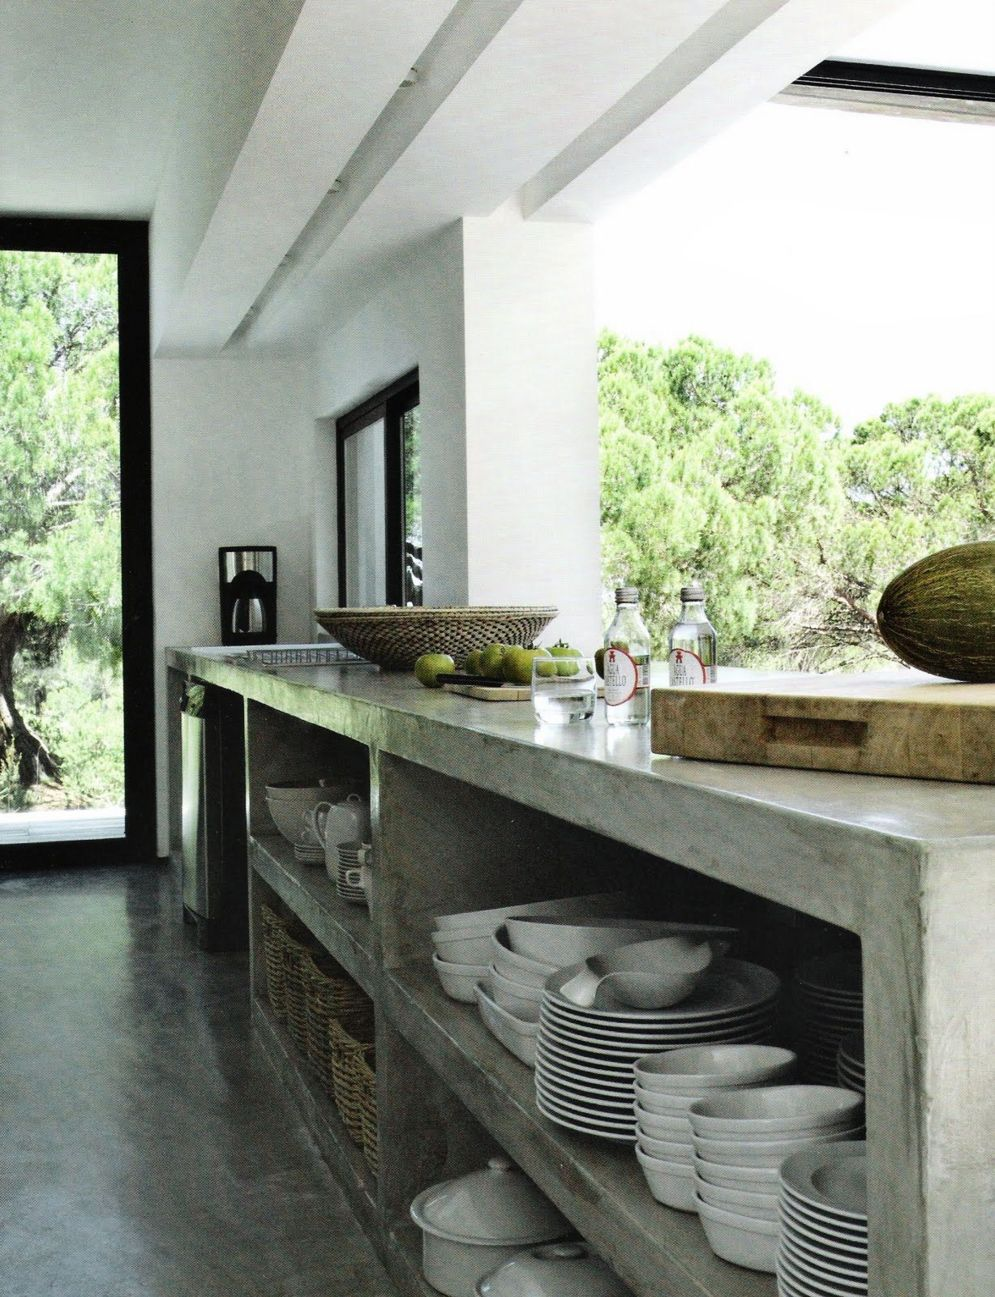 Modern kitchen updates using efficient concrete benchtops to show sturdier interior display Image 33